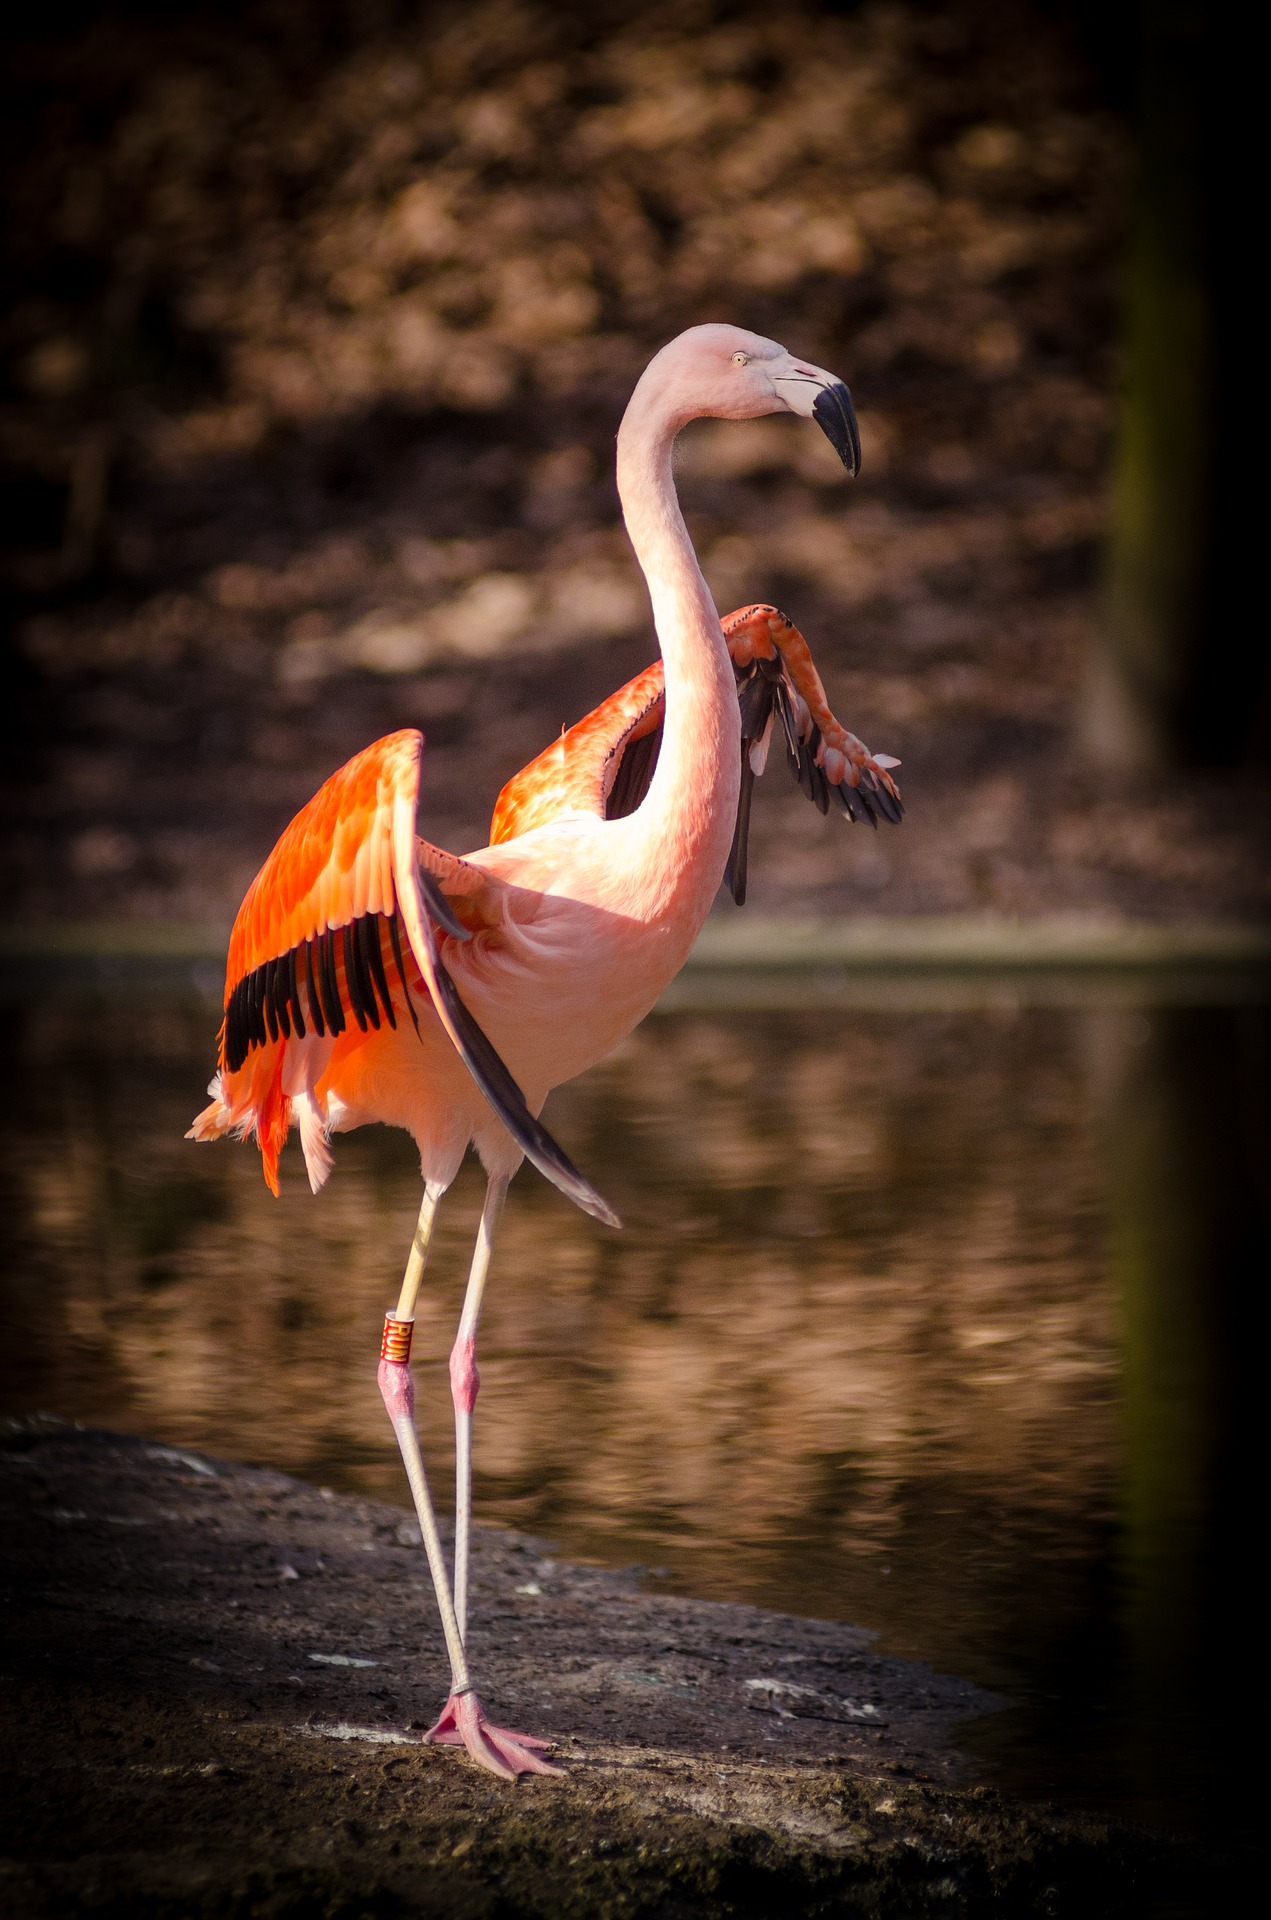 photo of a pink flamingo